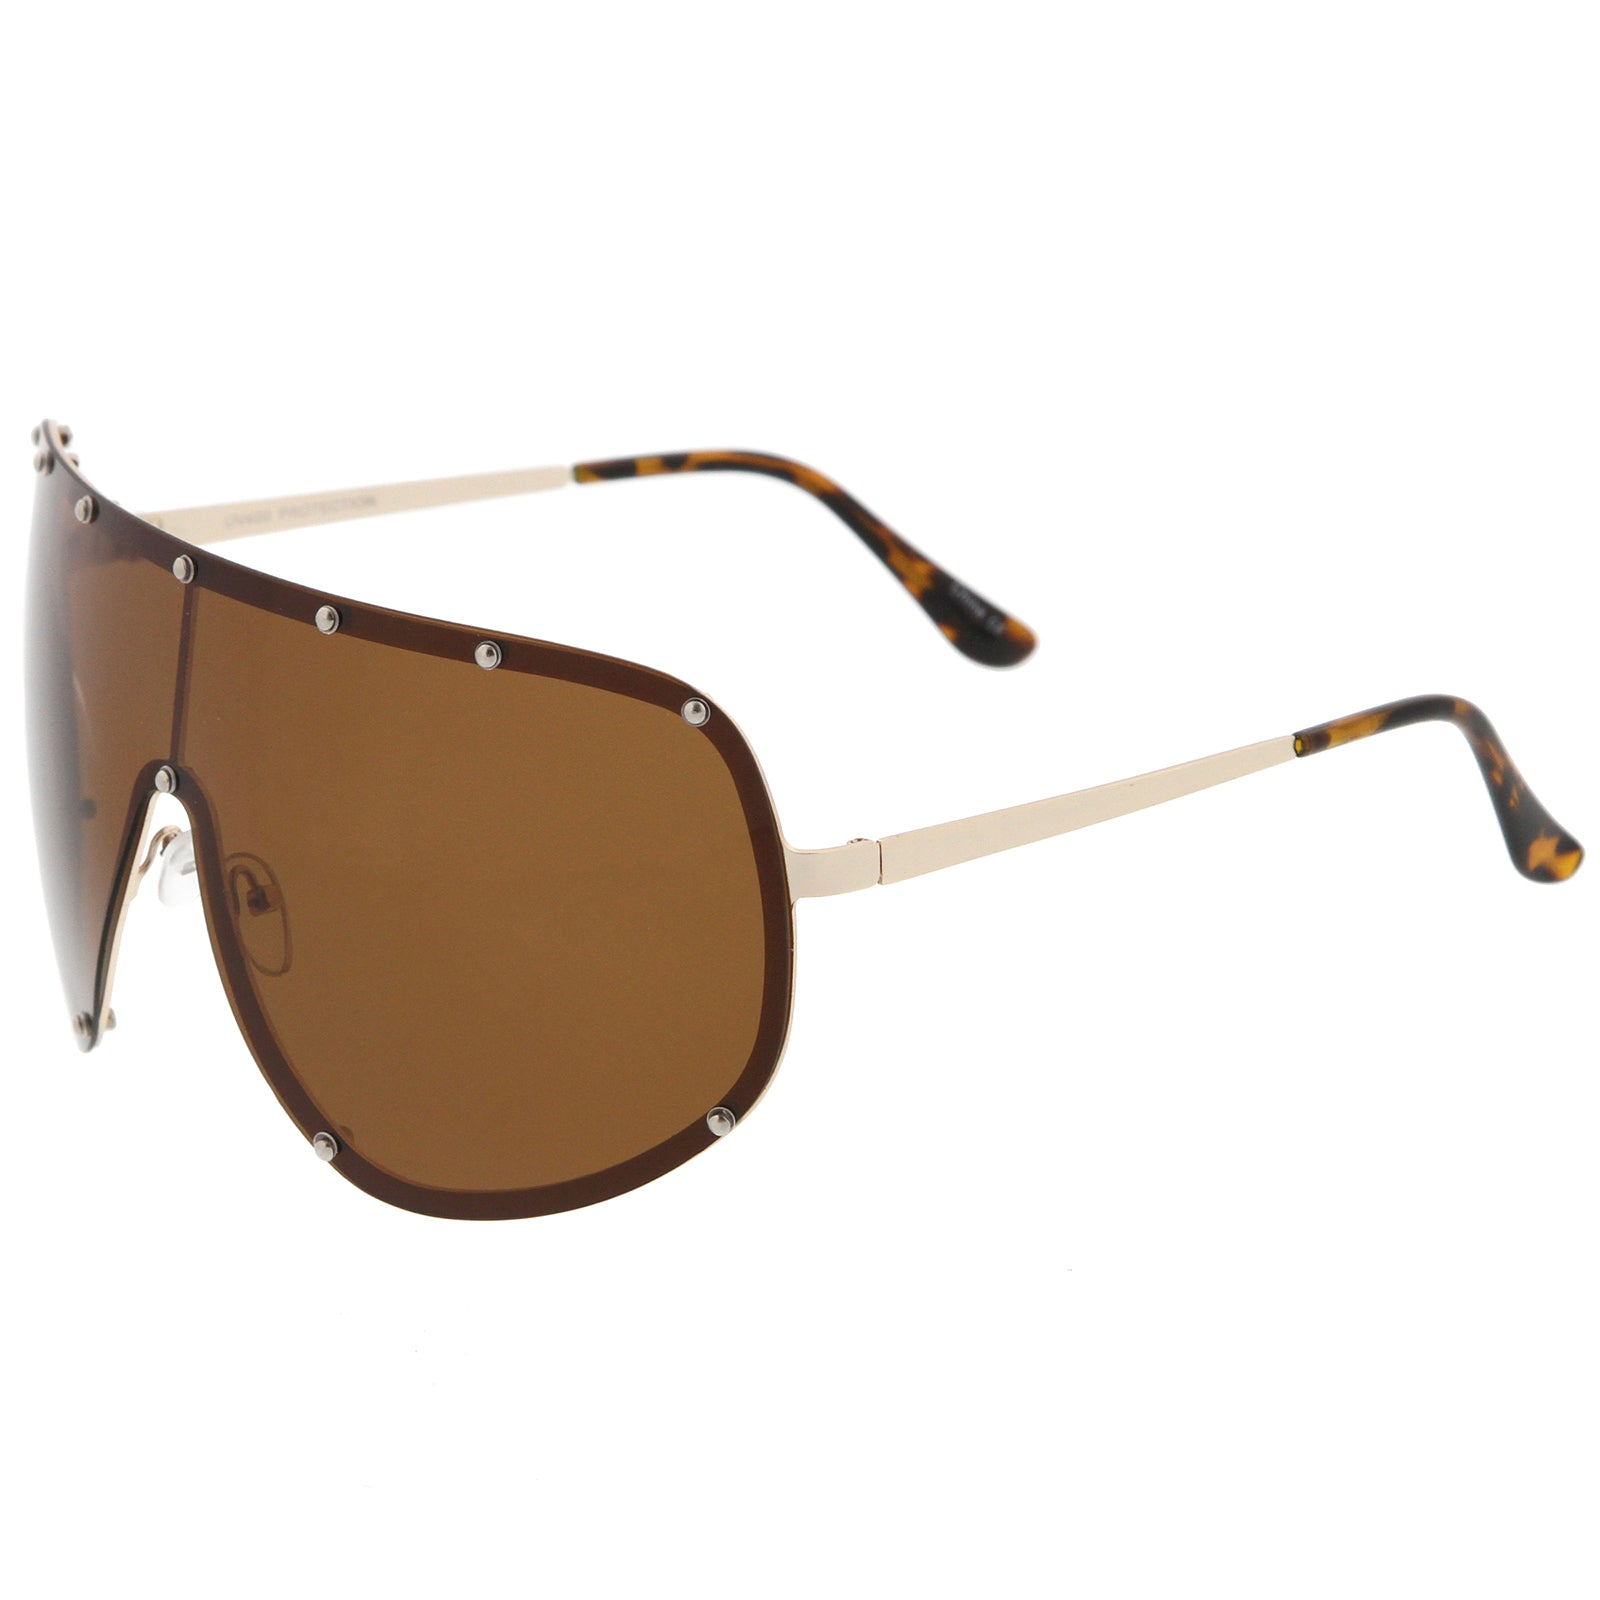 Oversize Flat Top Riveted Rimless Polarized Mono Lens Shield Sunglasses 80mm - sunglass.la - 3